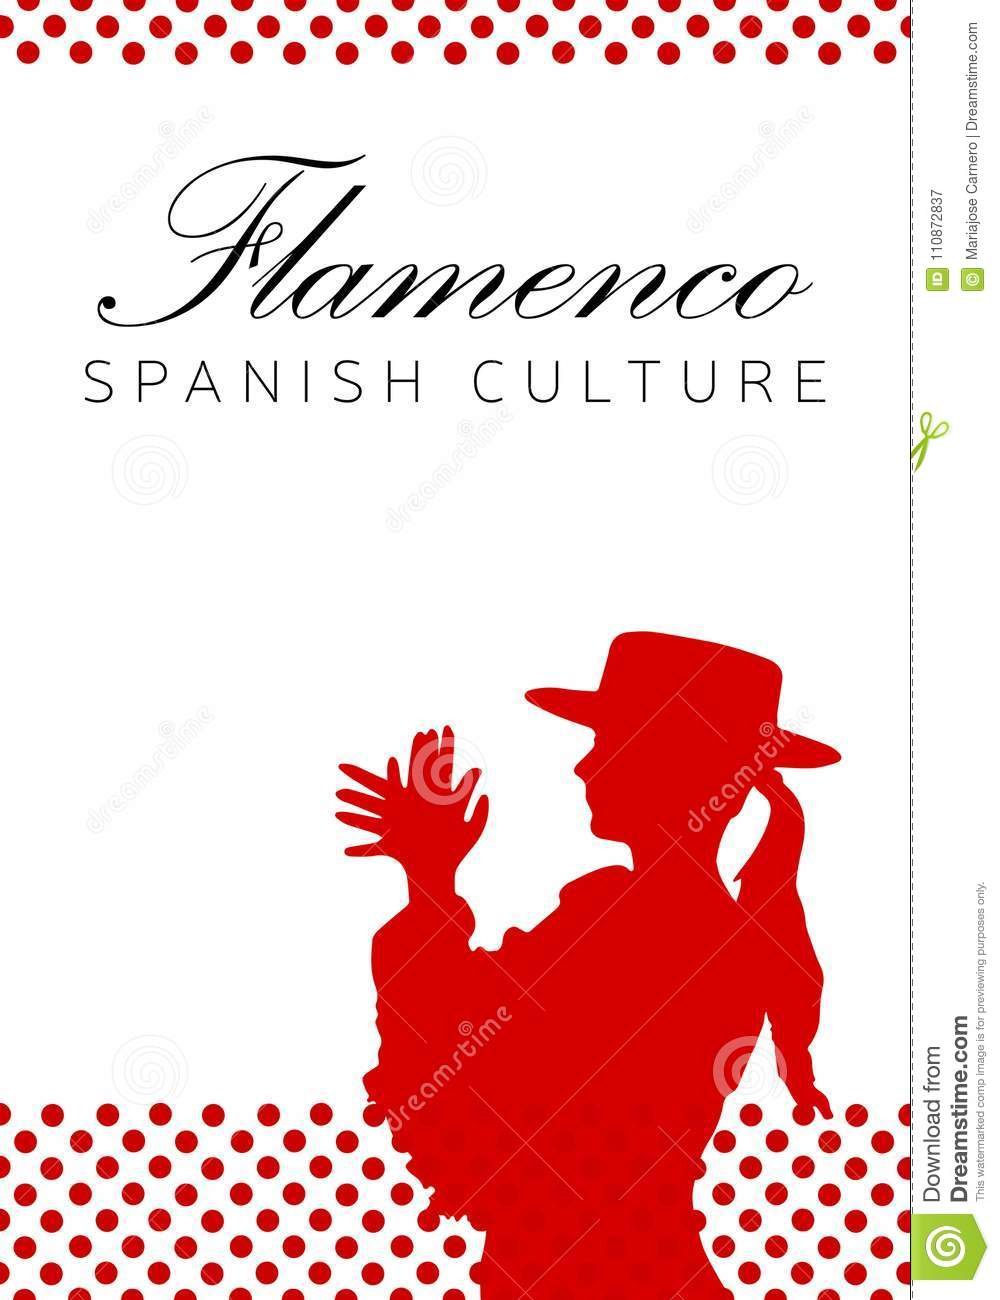 Poster In Spanish Spanish Culture Tradition Flamenco Dance Stock Vector